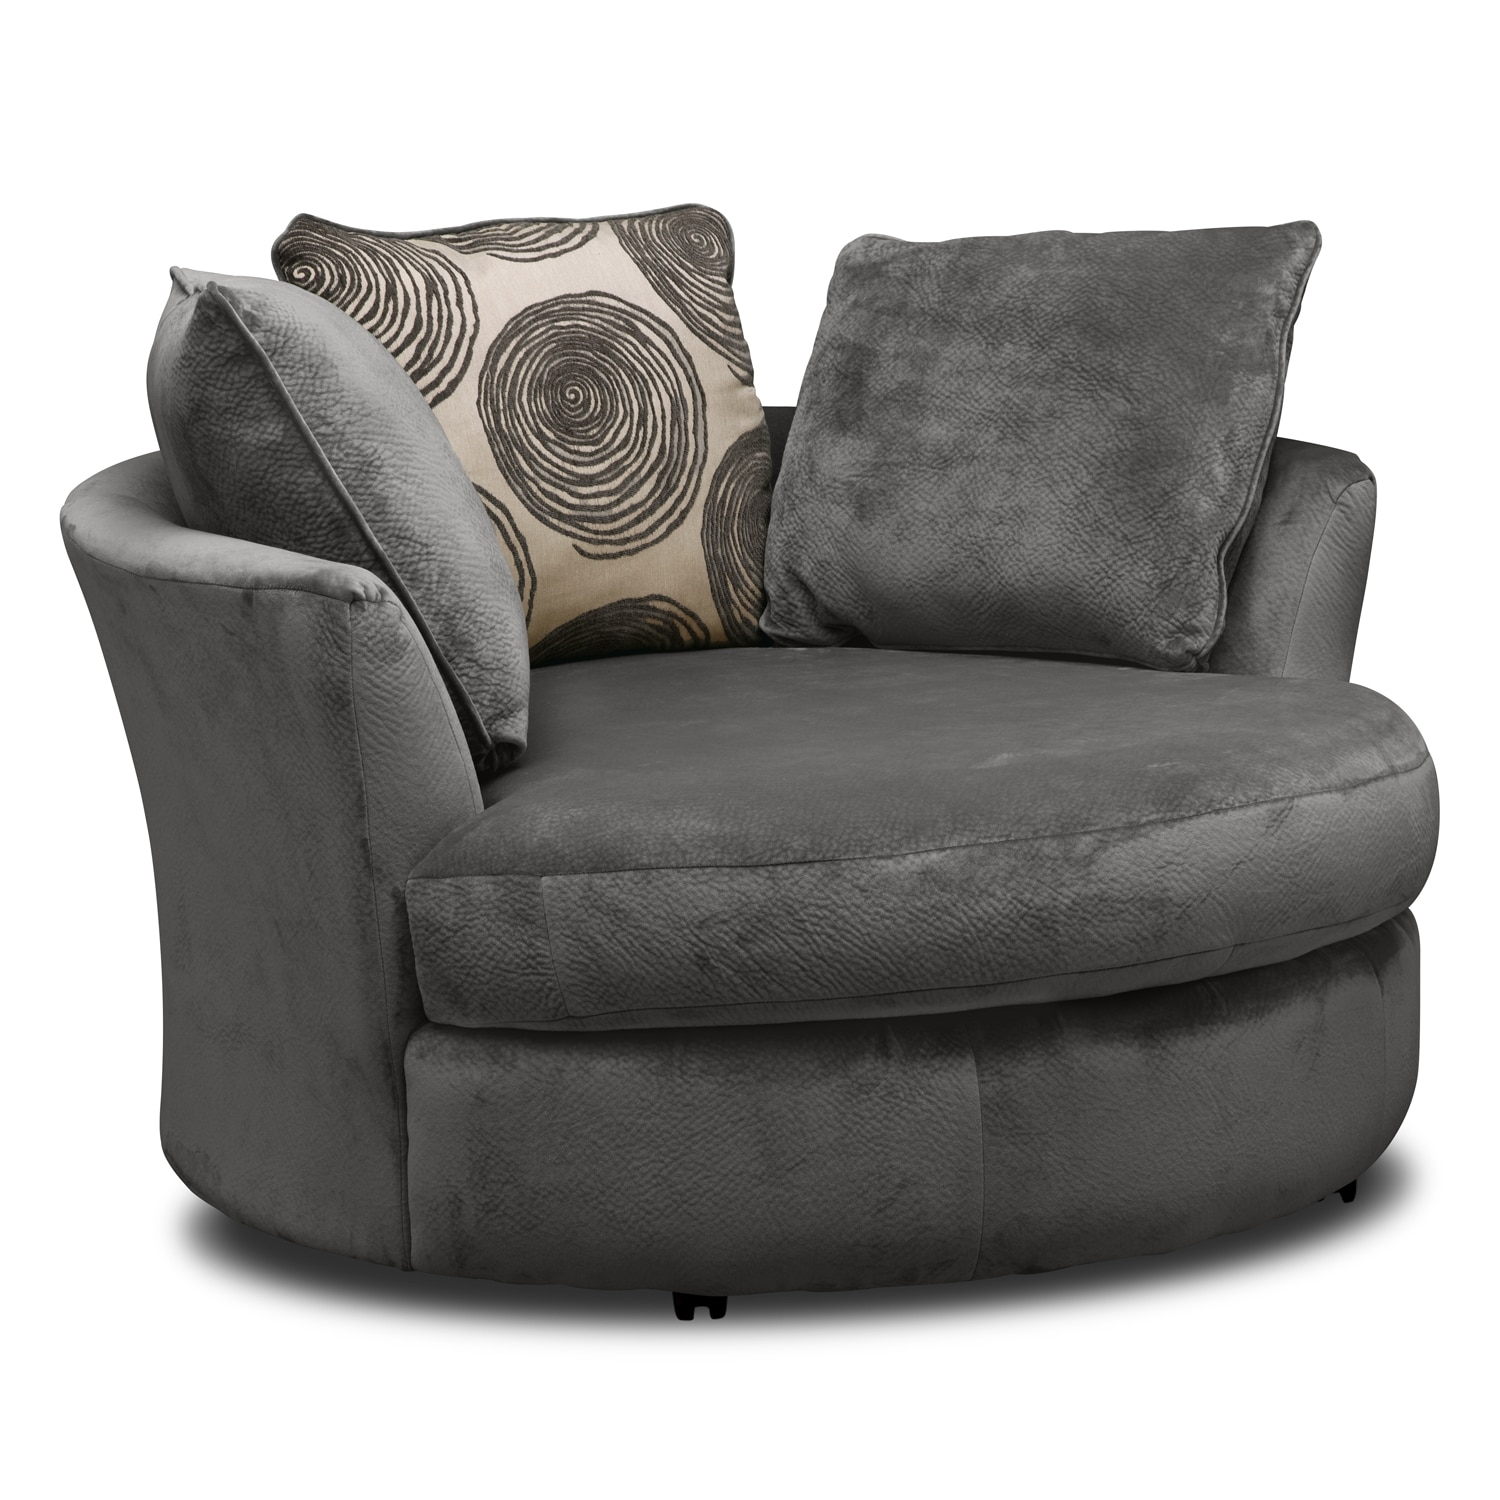 [Cordoba Gray Swivel Chair]